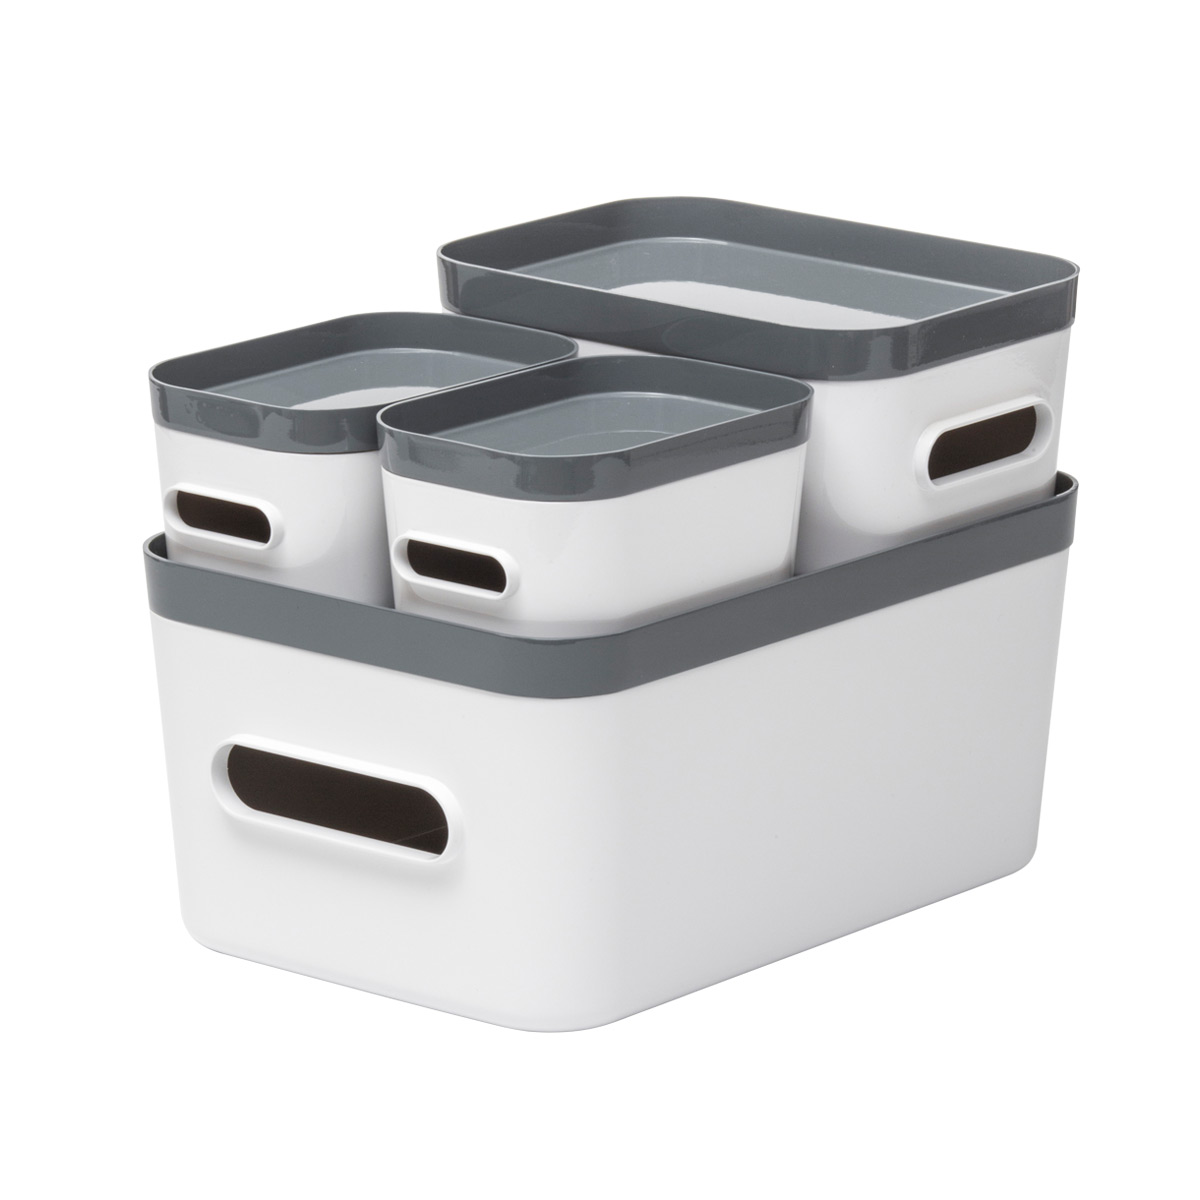 Smart Store White Compact Plastic Bins 4-Pack with Grey Lids